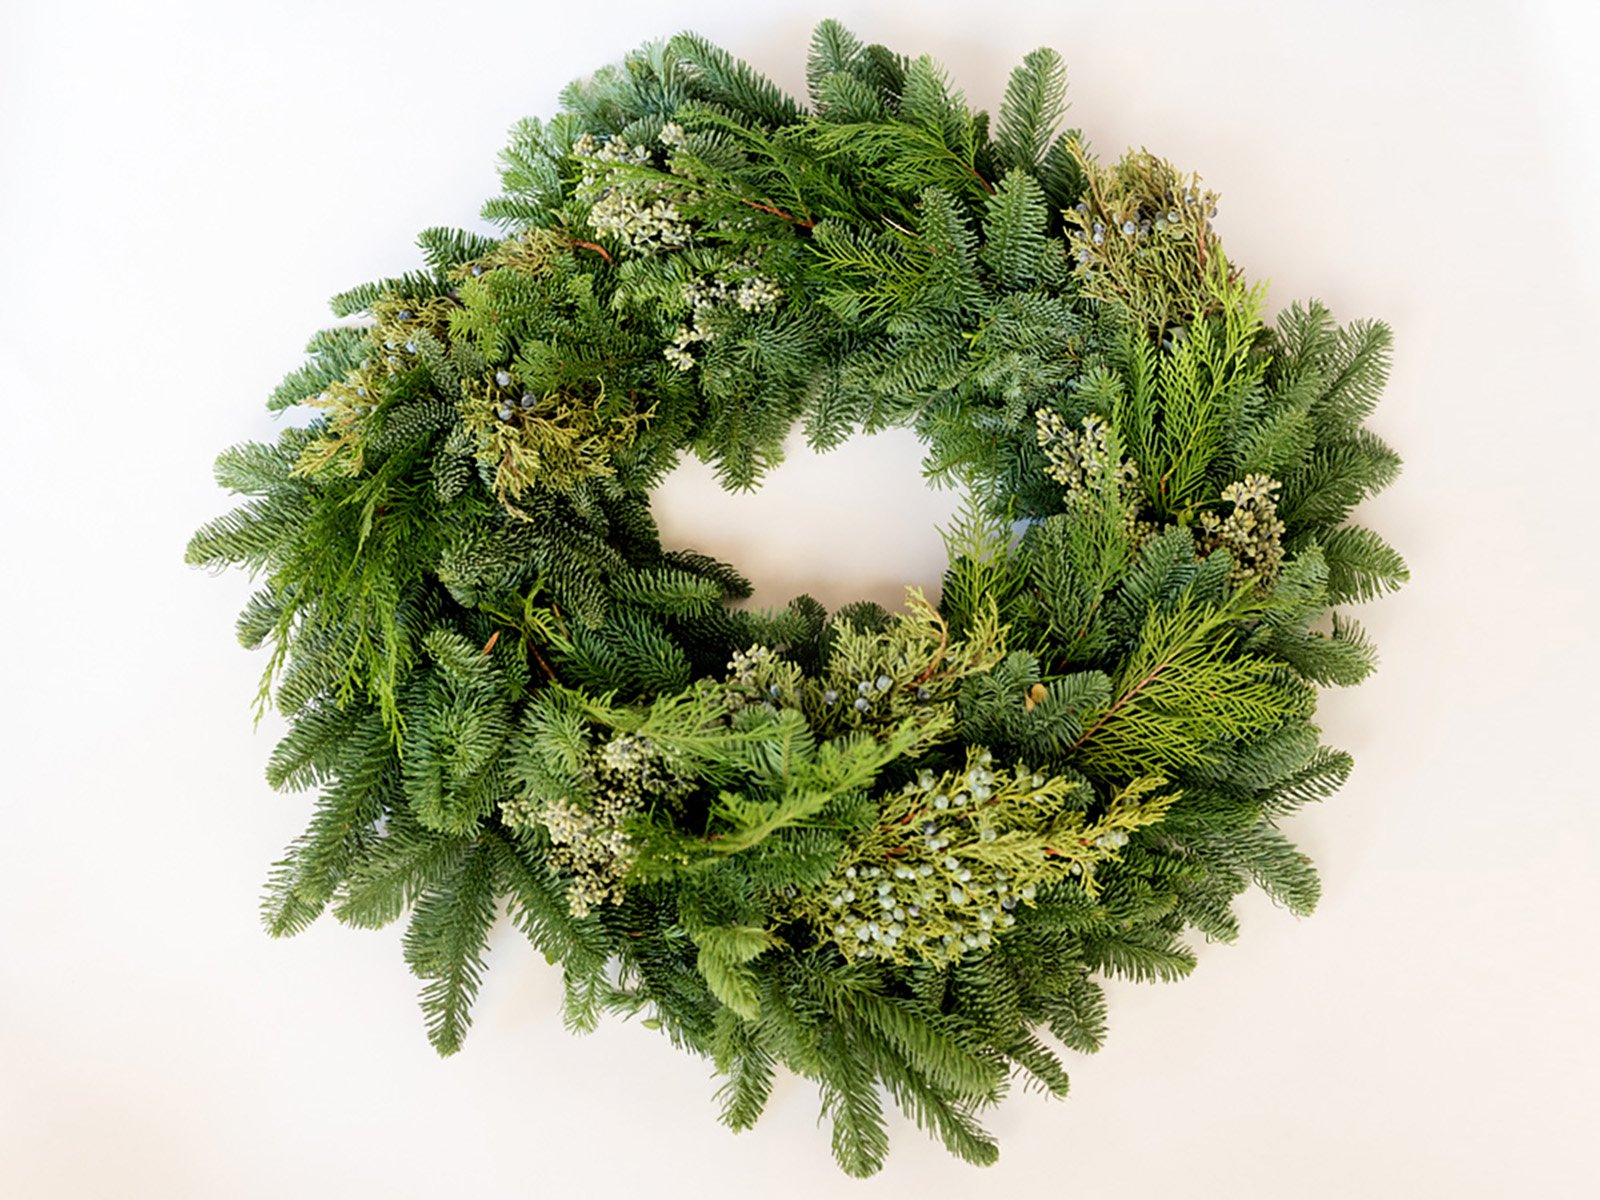 Mixed Evergreen Wreath and Garland